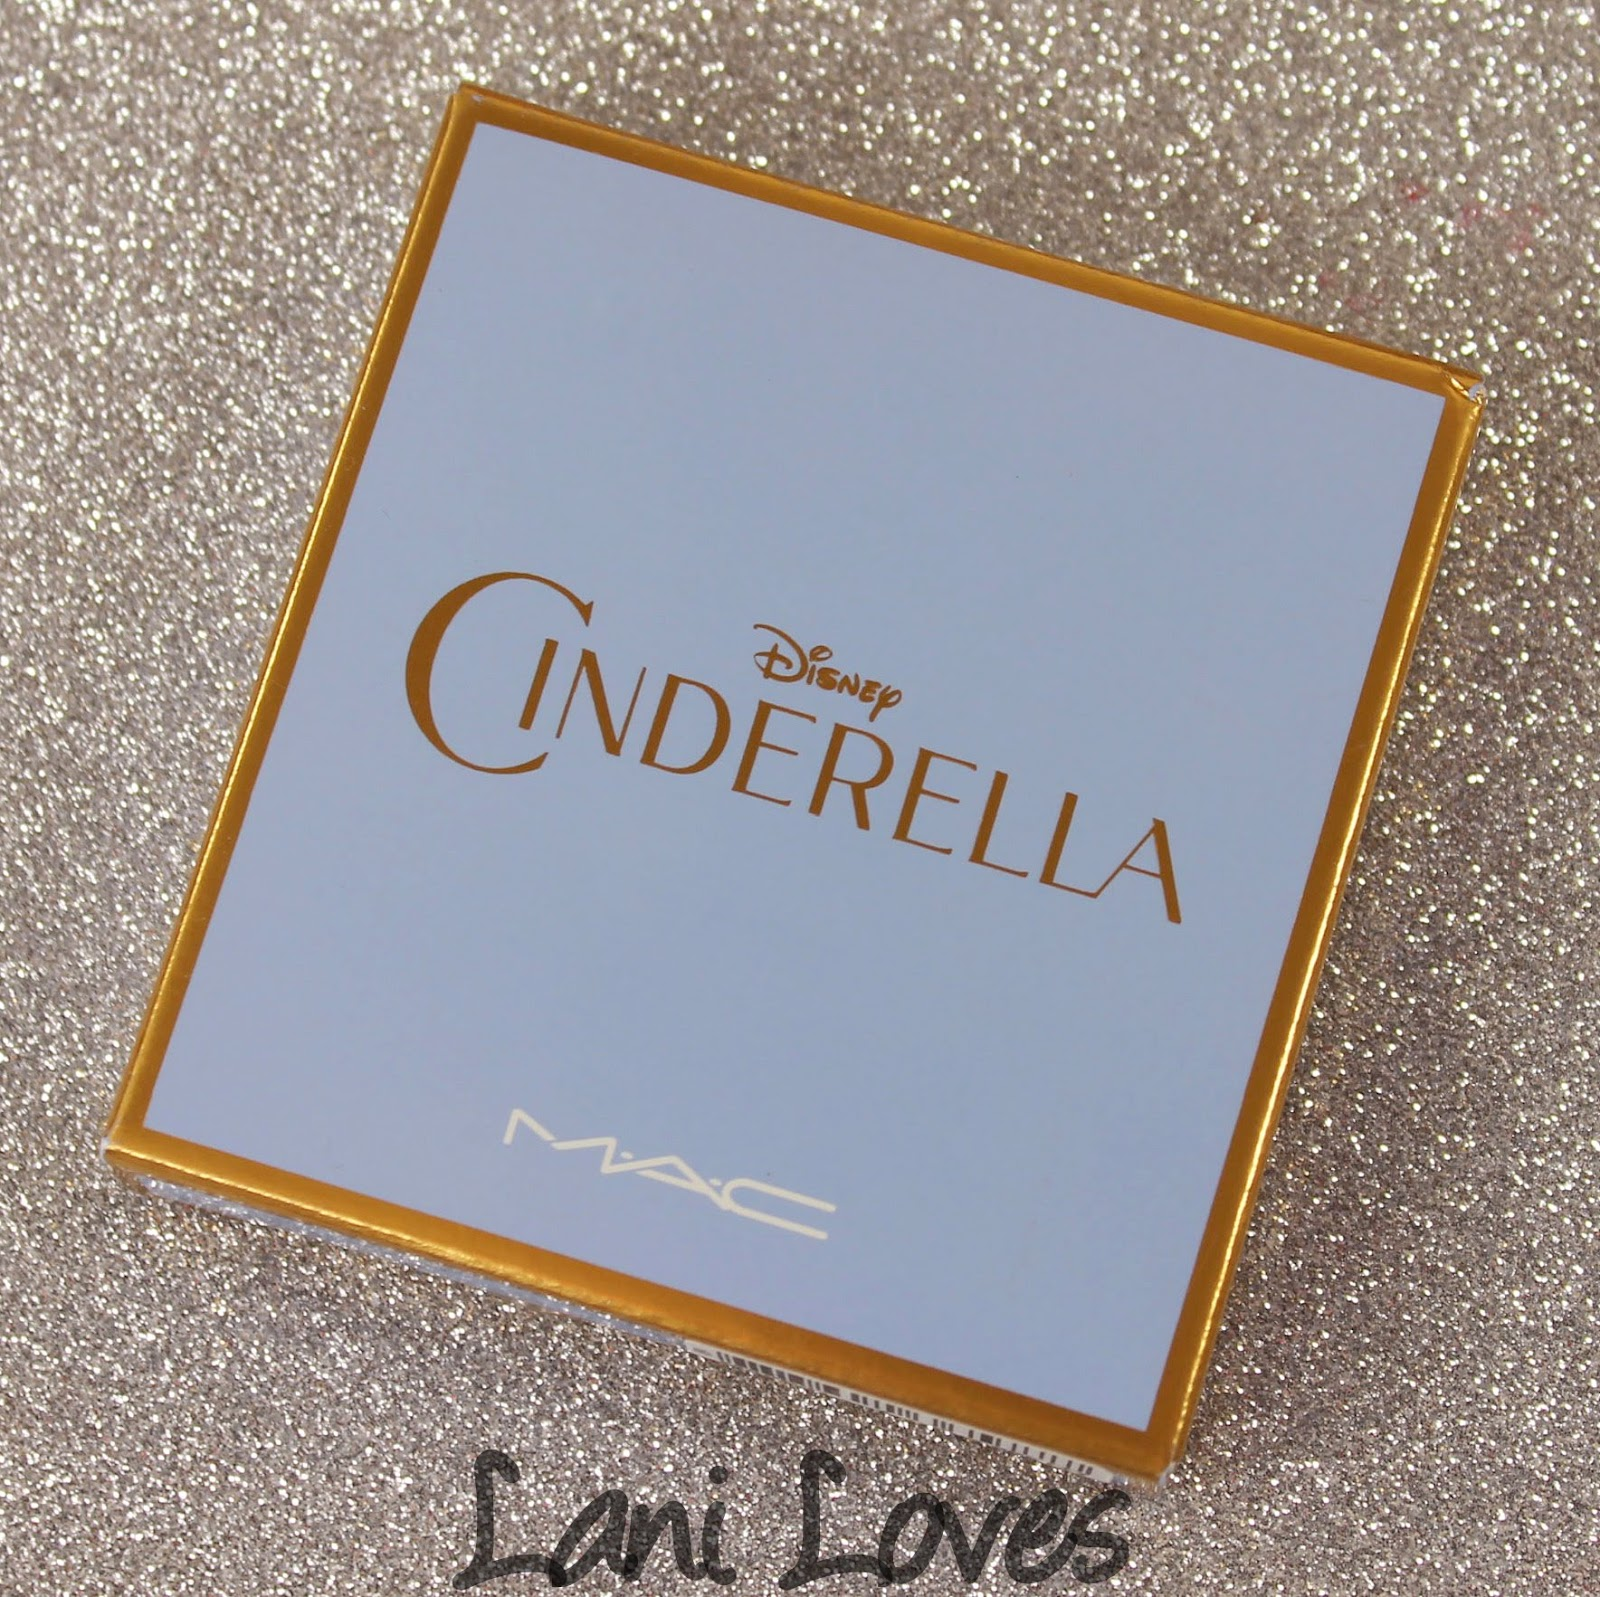 MAC Monday: Cinderella - Stroke of Midnight Eye Shadow x6 Swatches & Review